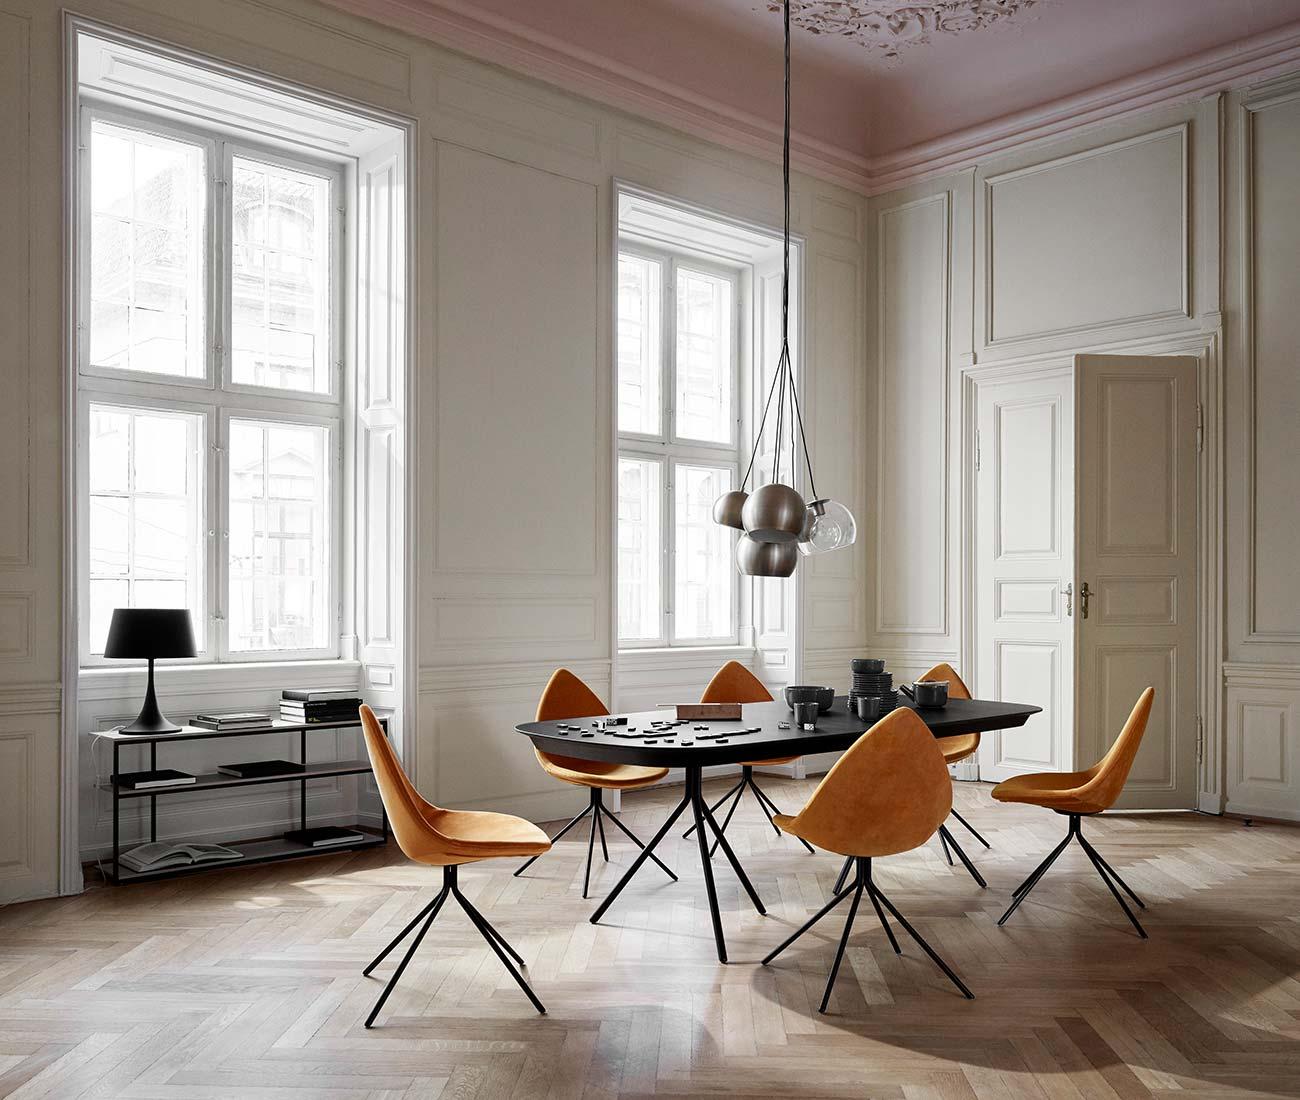 Euro Furniture Montreal Contemporary Danish Furniture Discover Boconcept